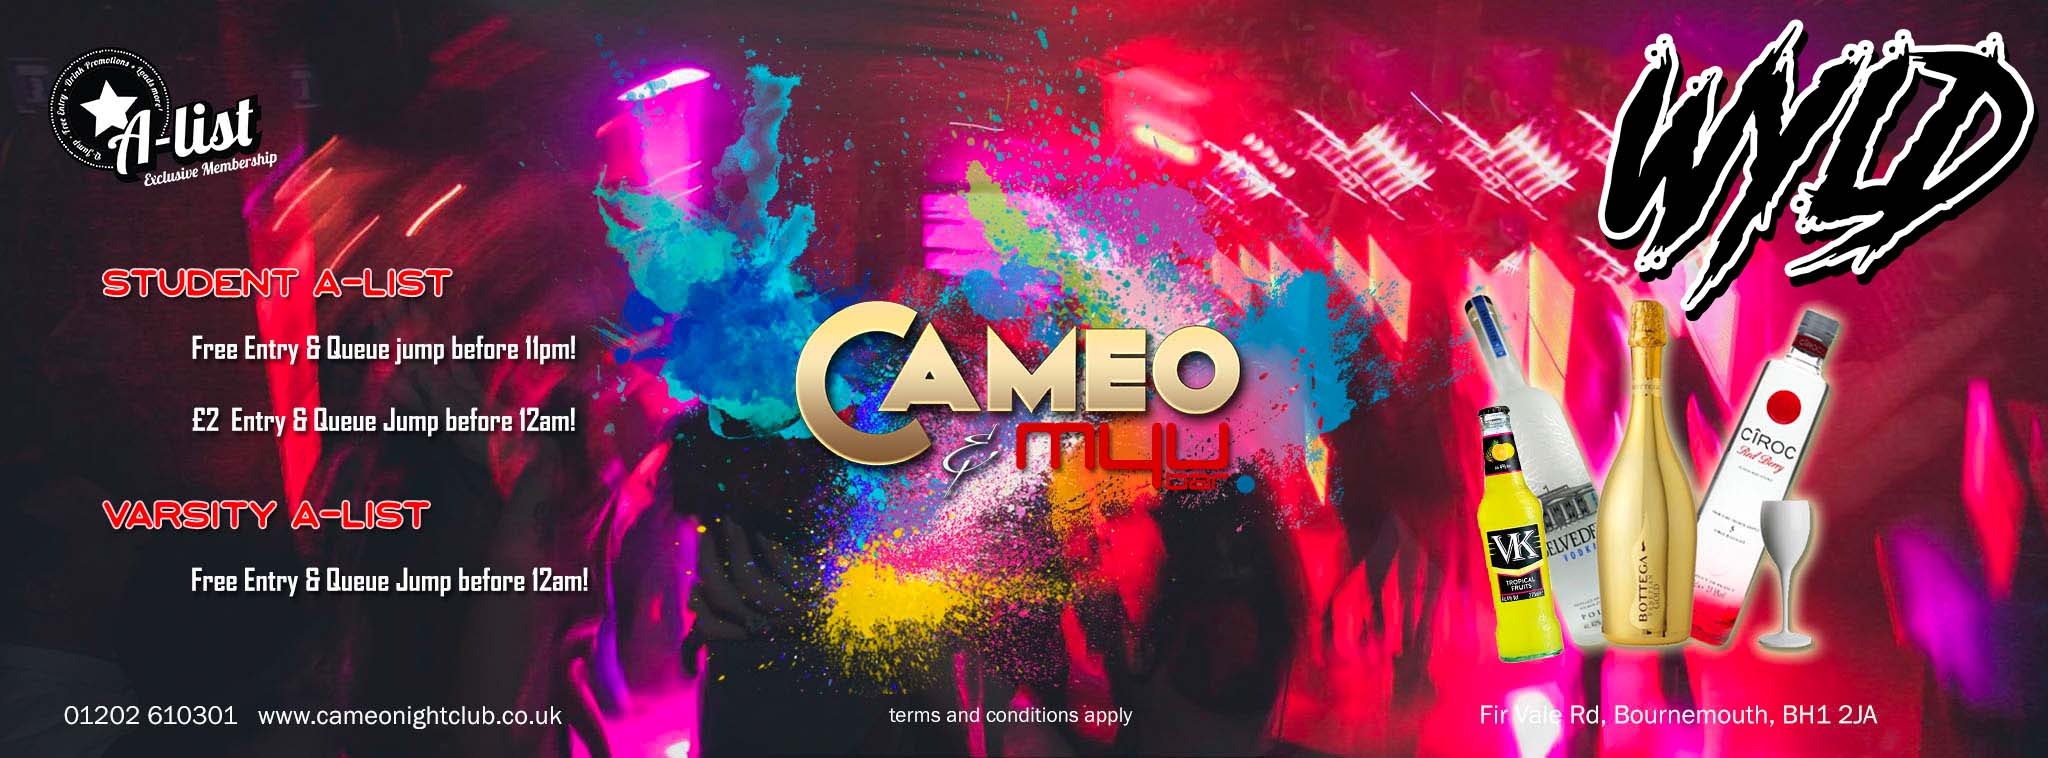 Wyld Wednesdays @ Cameo